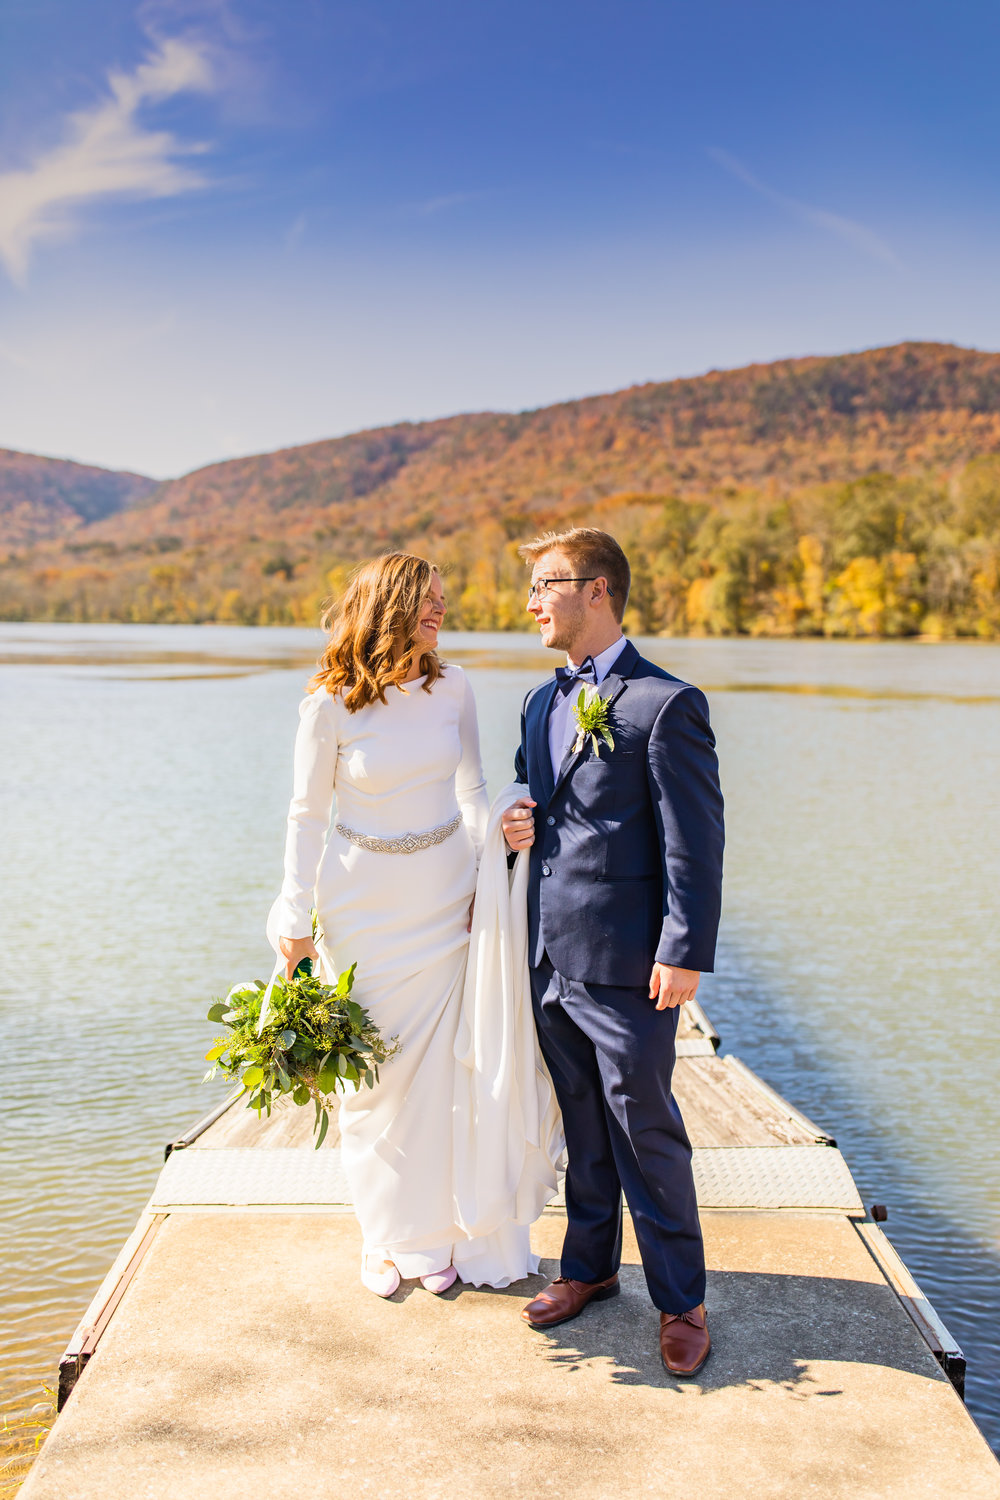 Wedding_Chattanooga_Emily_Lester_Photography-287.jpg